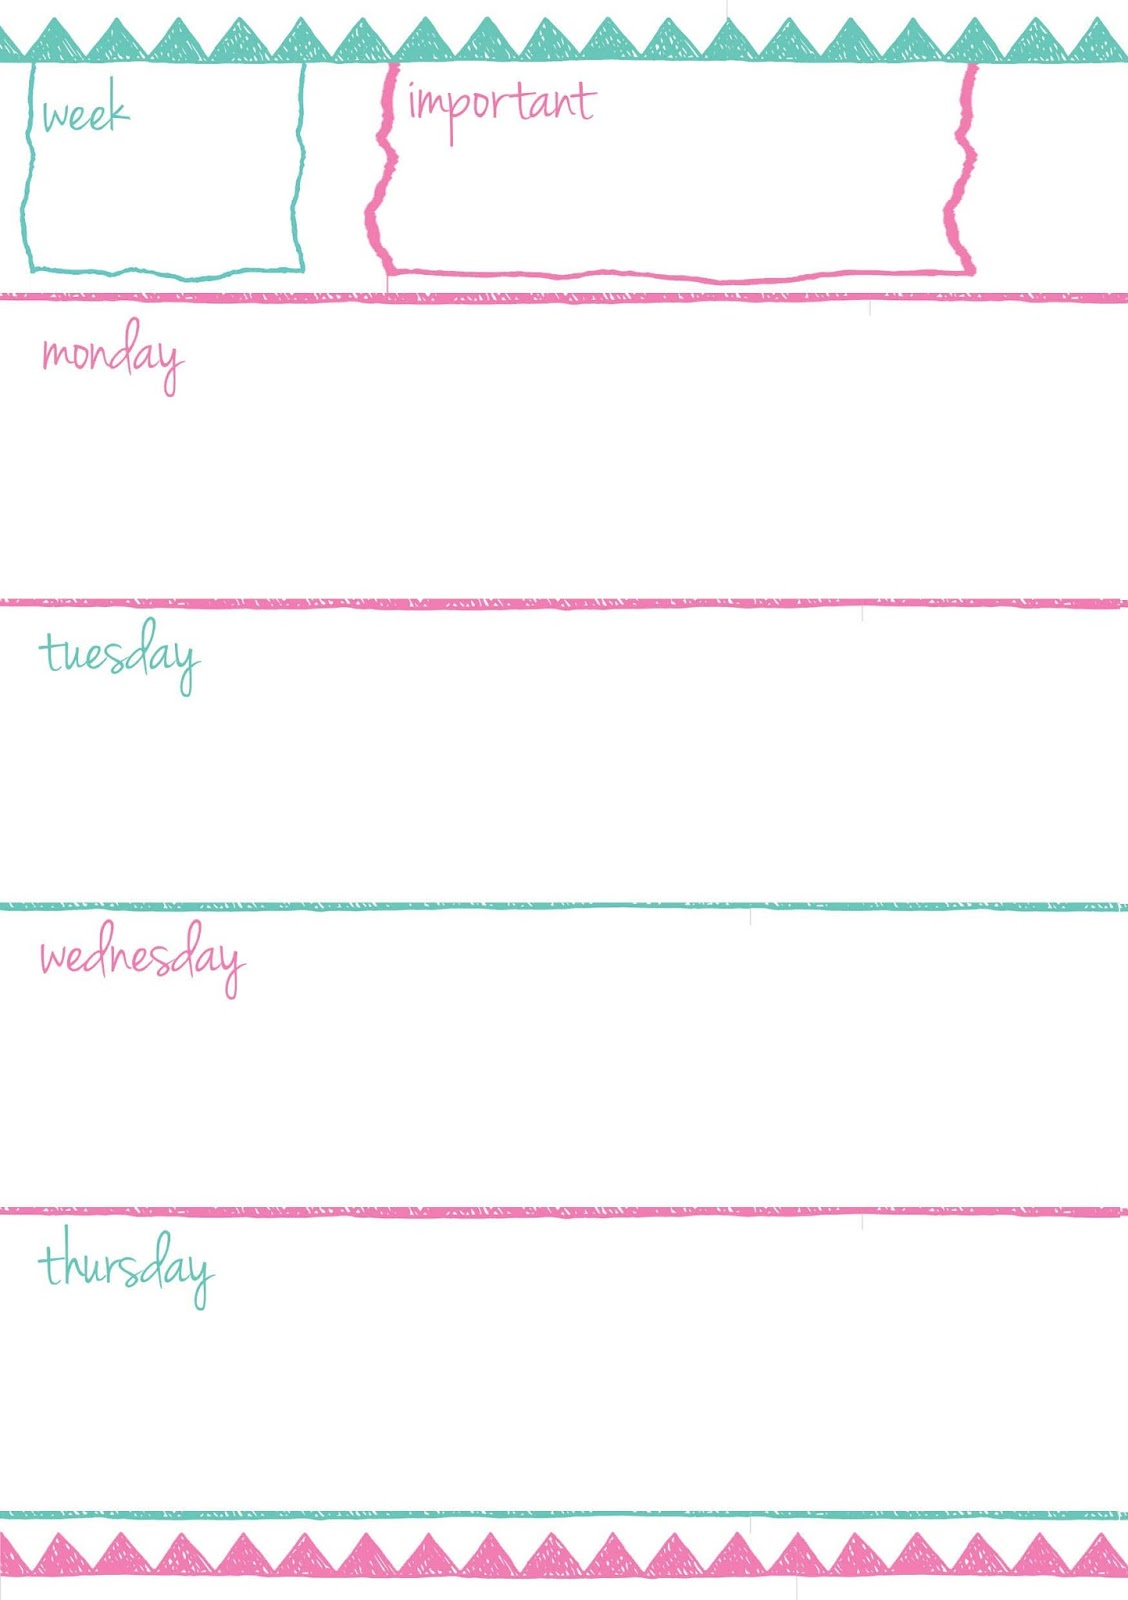 PB and J Studio: Free Printable Planner Inserts | Doodle ...